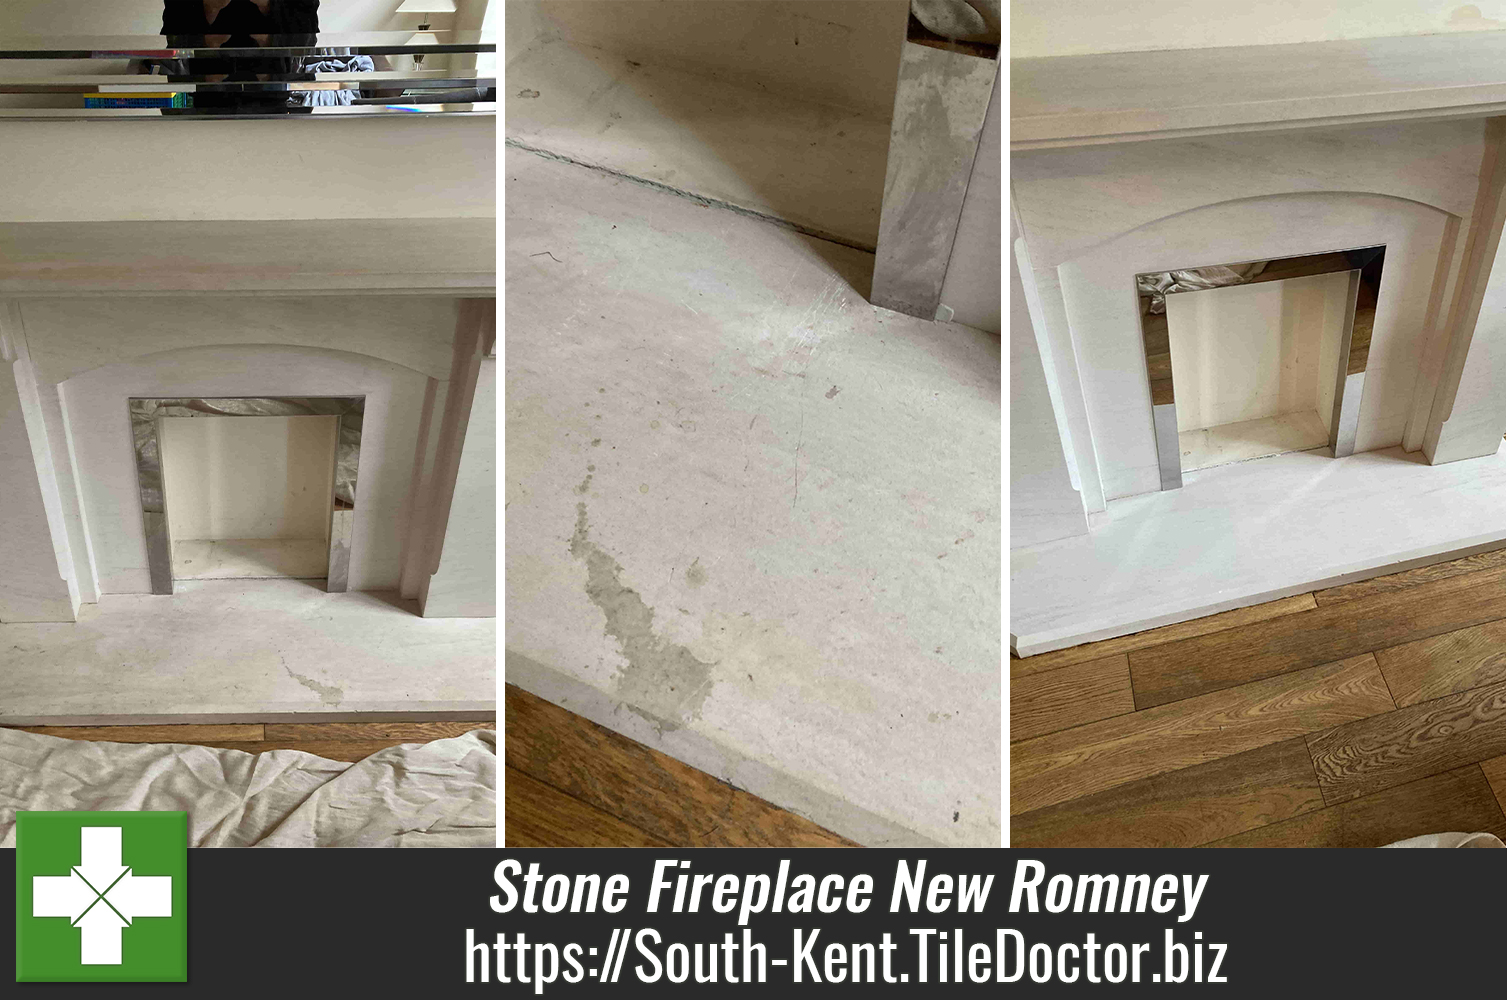 Limestone-Fireplace-Facelift-New-Romney